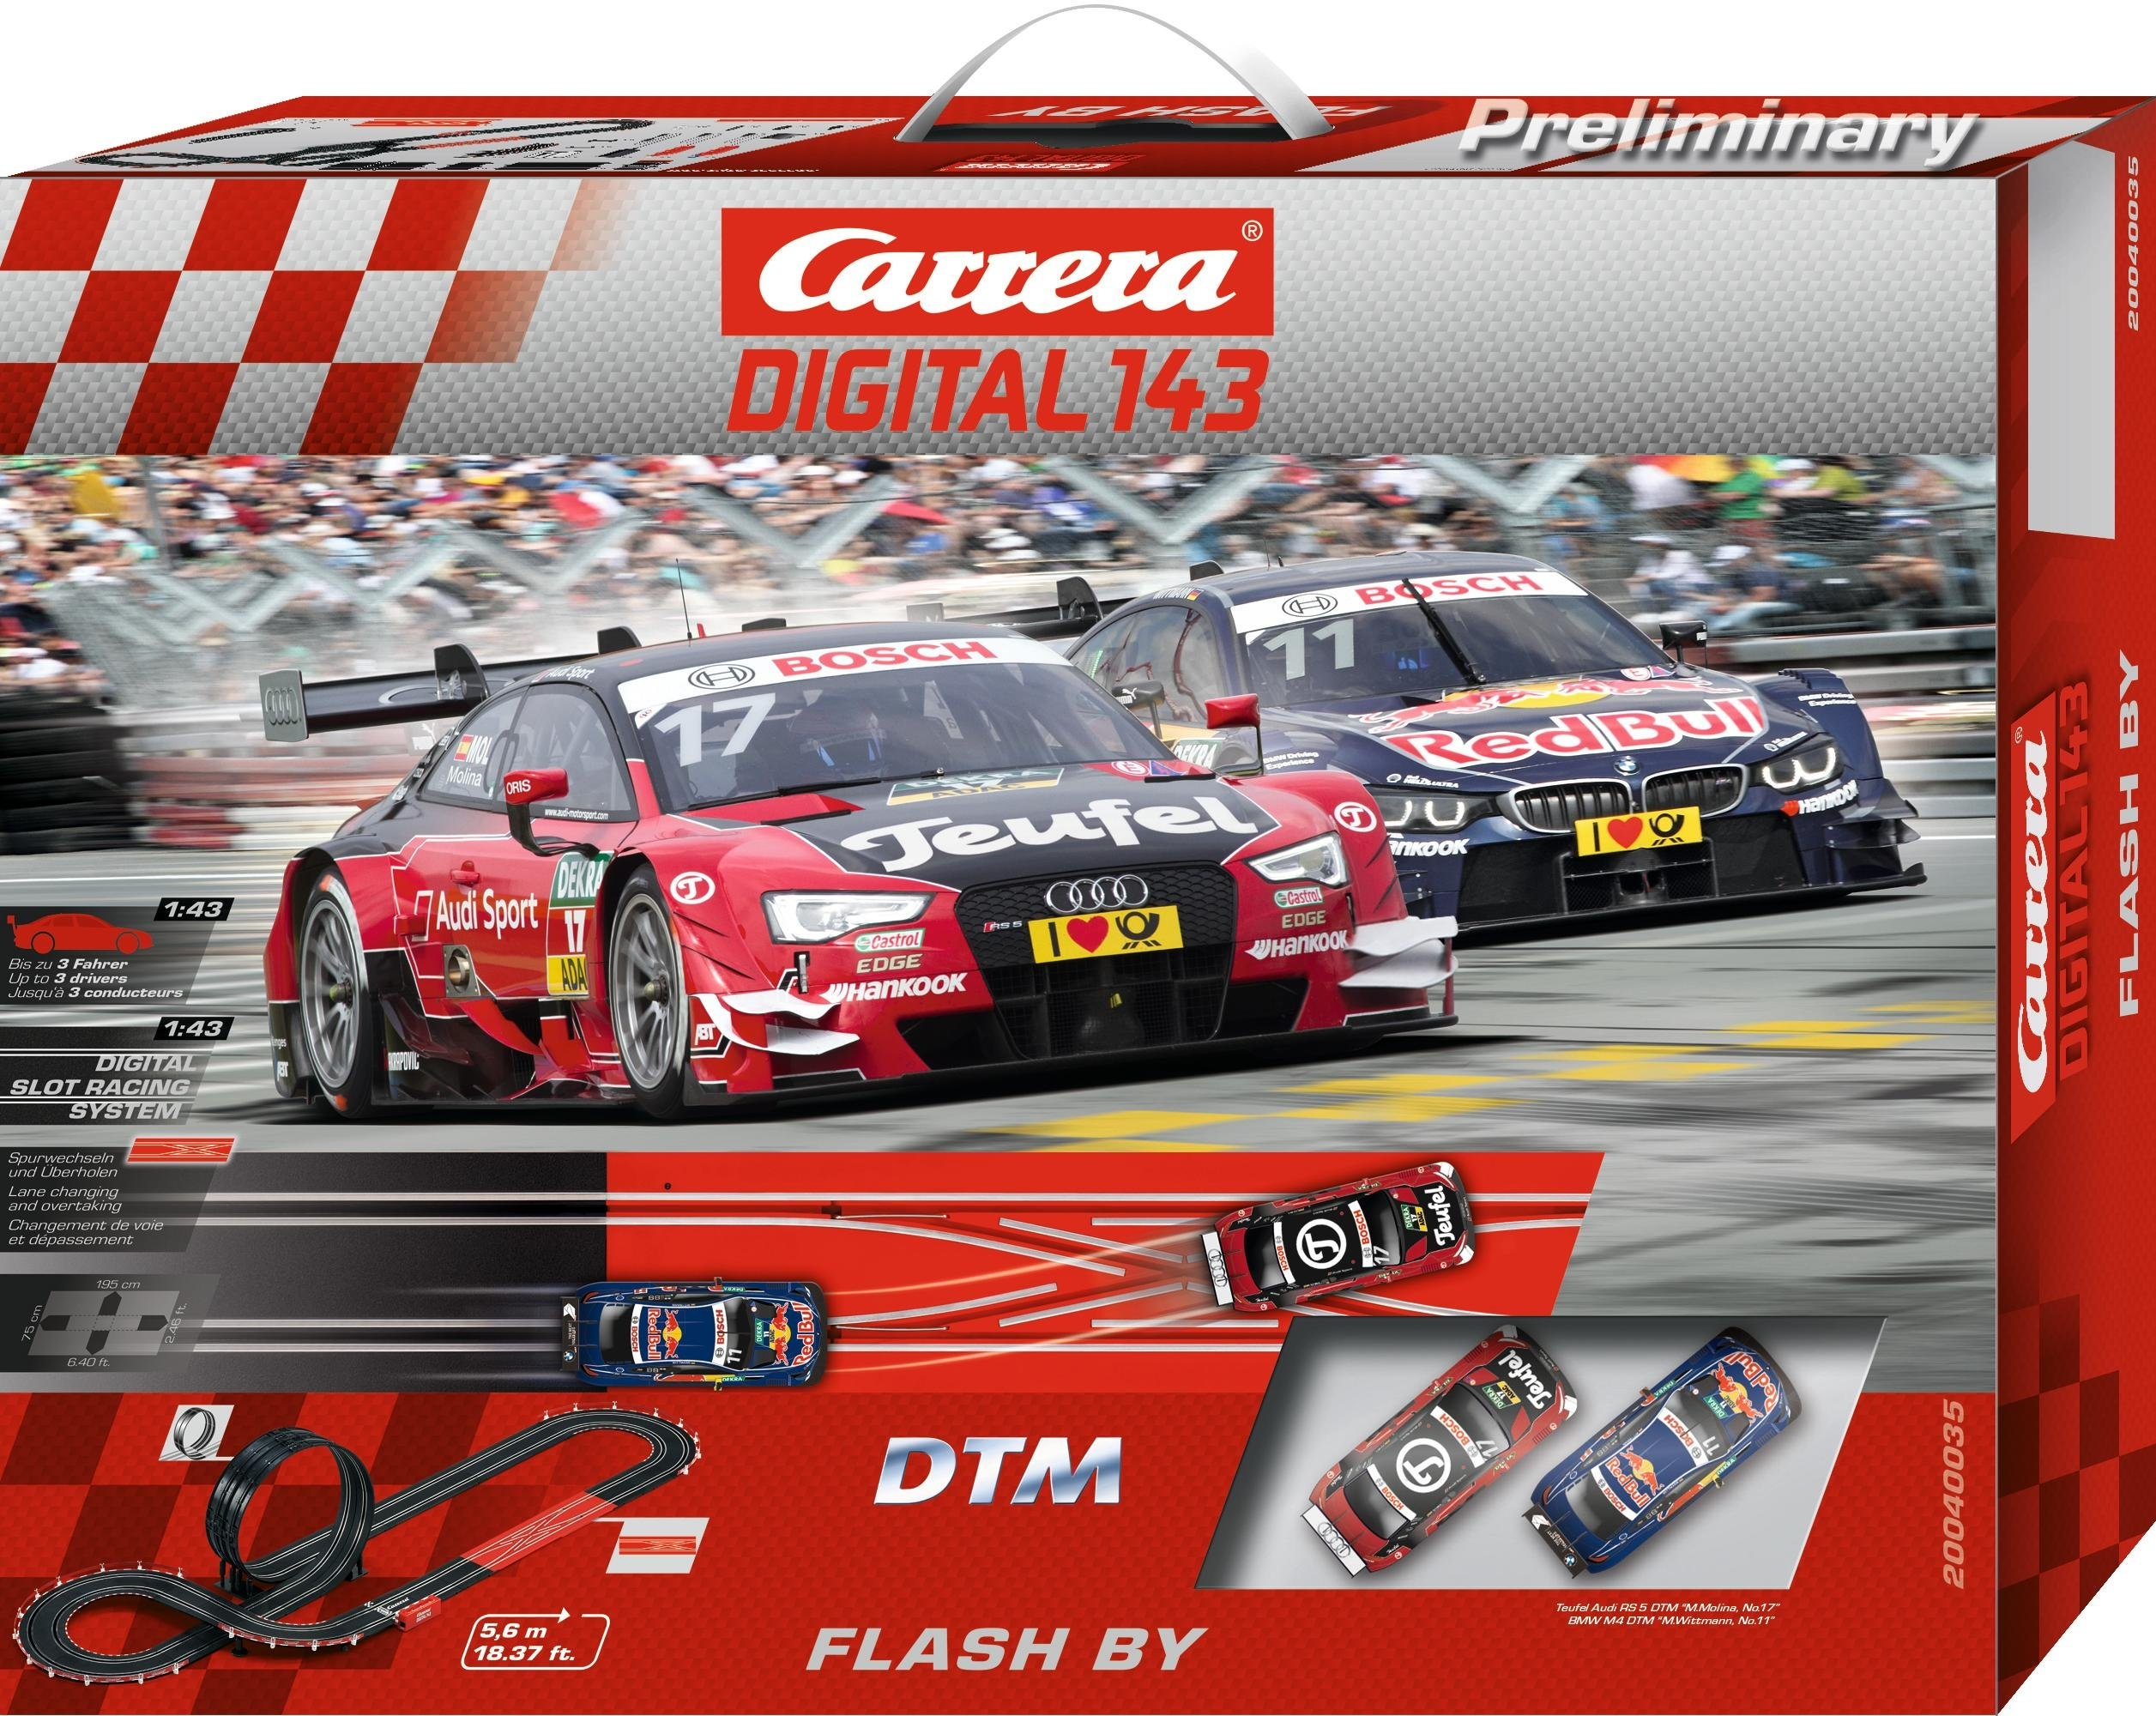 Carrera racecircuit, »Carrera® Digital 143 DTM Flash By« - verschillende betaalmethodes